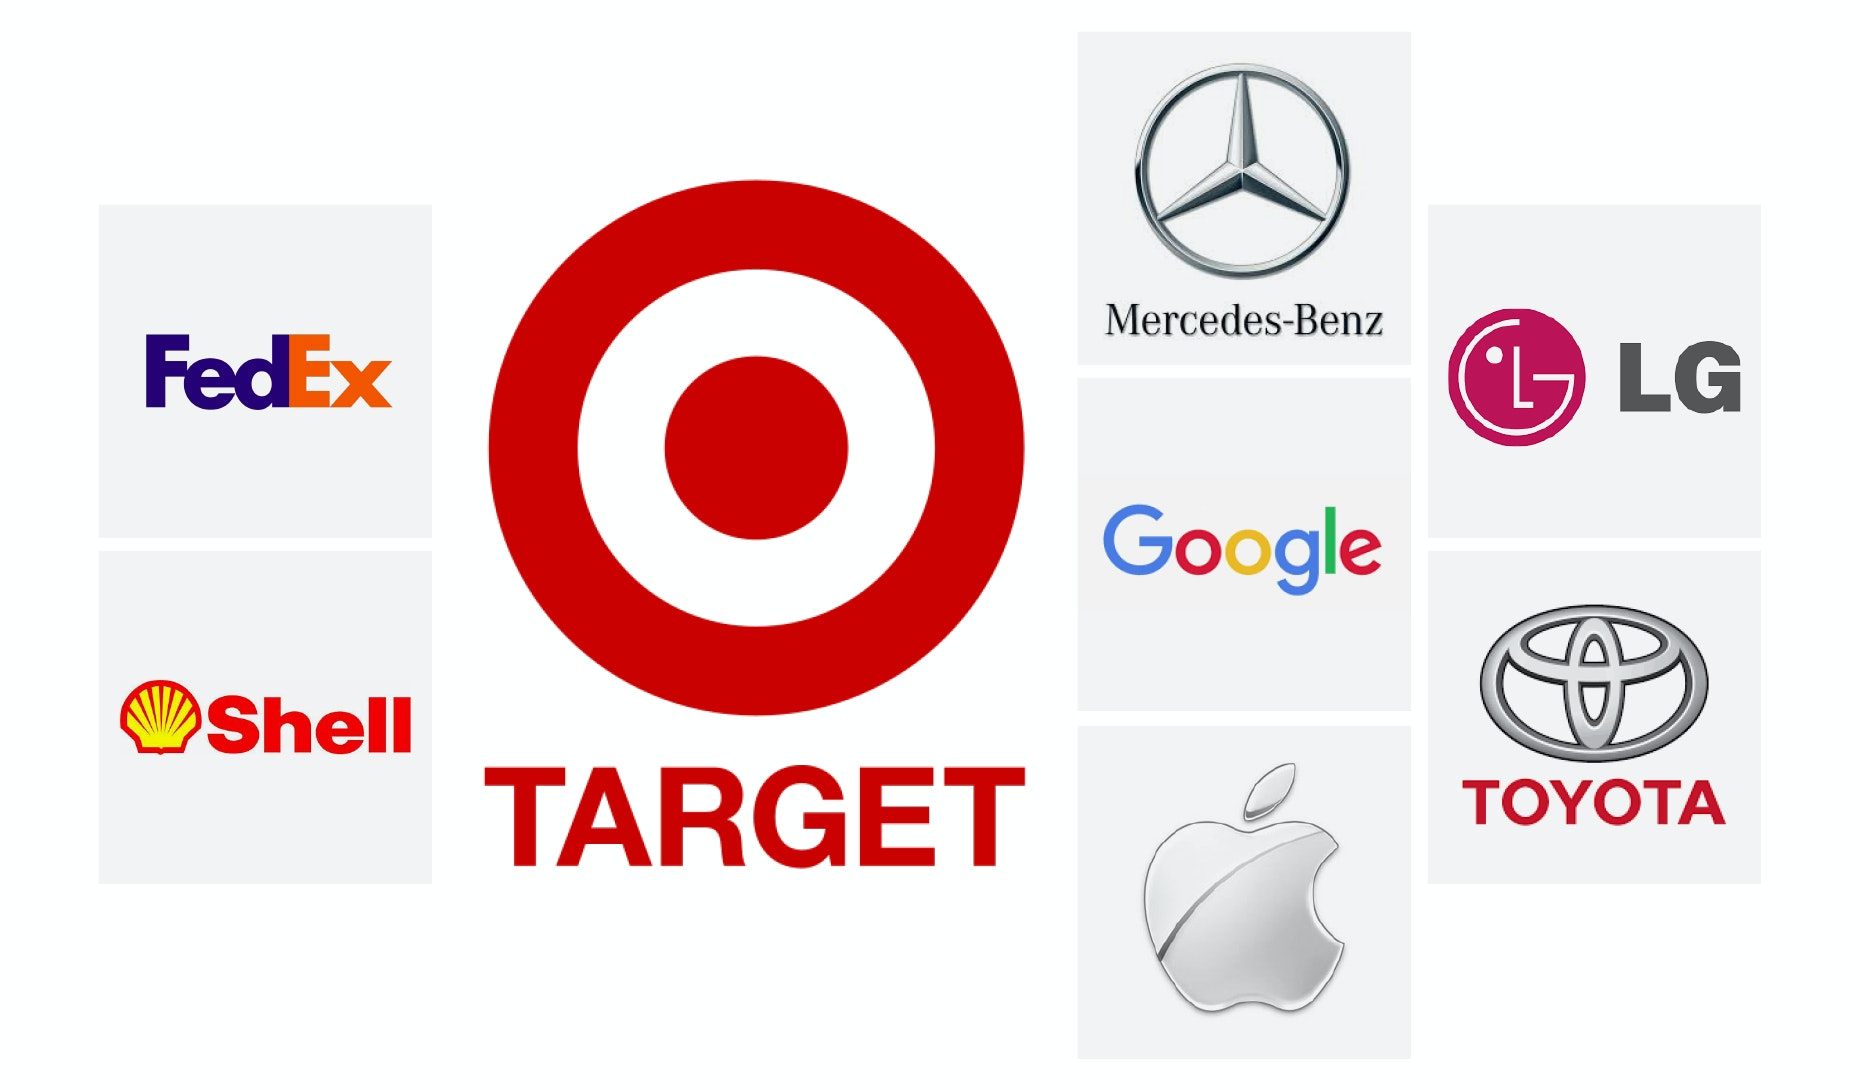 10 famous logos and what you can learn from them